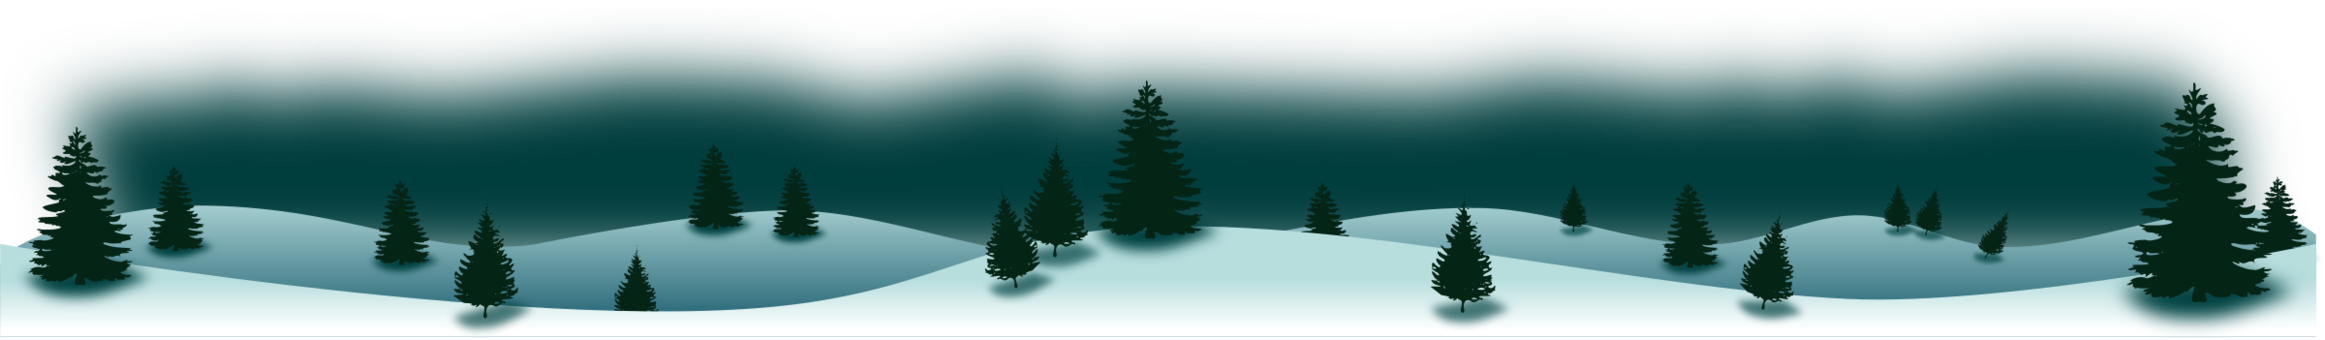 Evergreen clipart snow capped. Computer icons cap winter